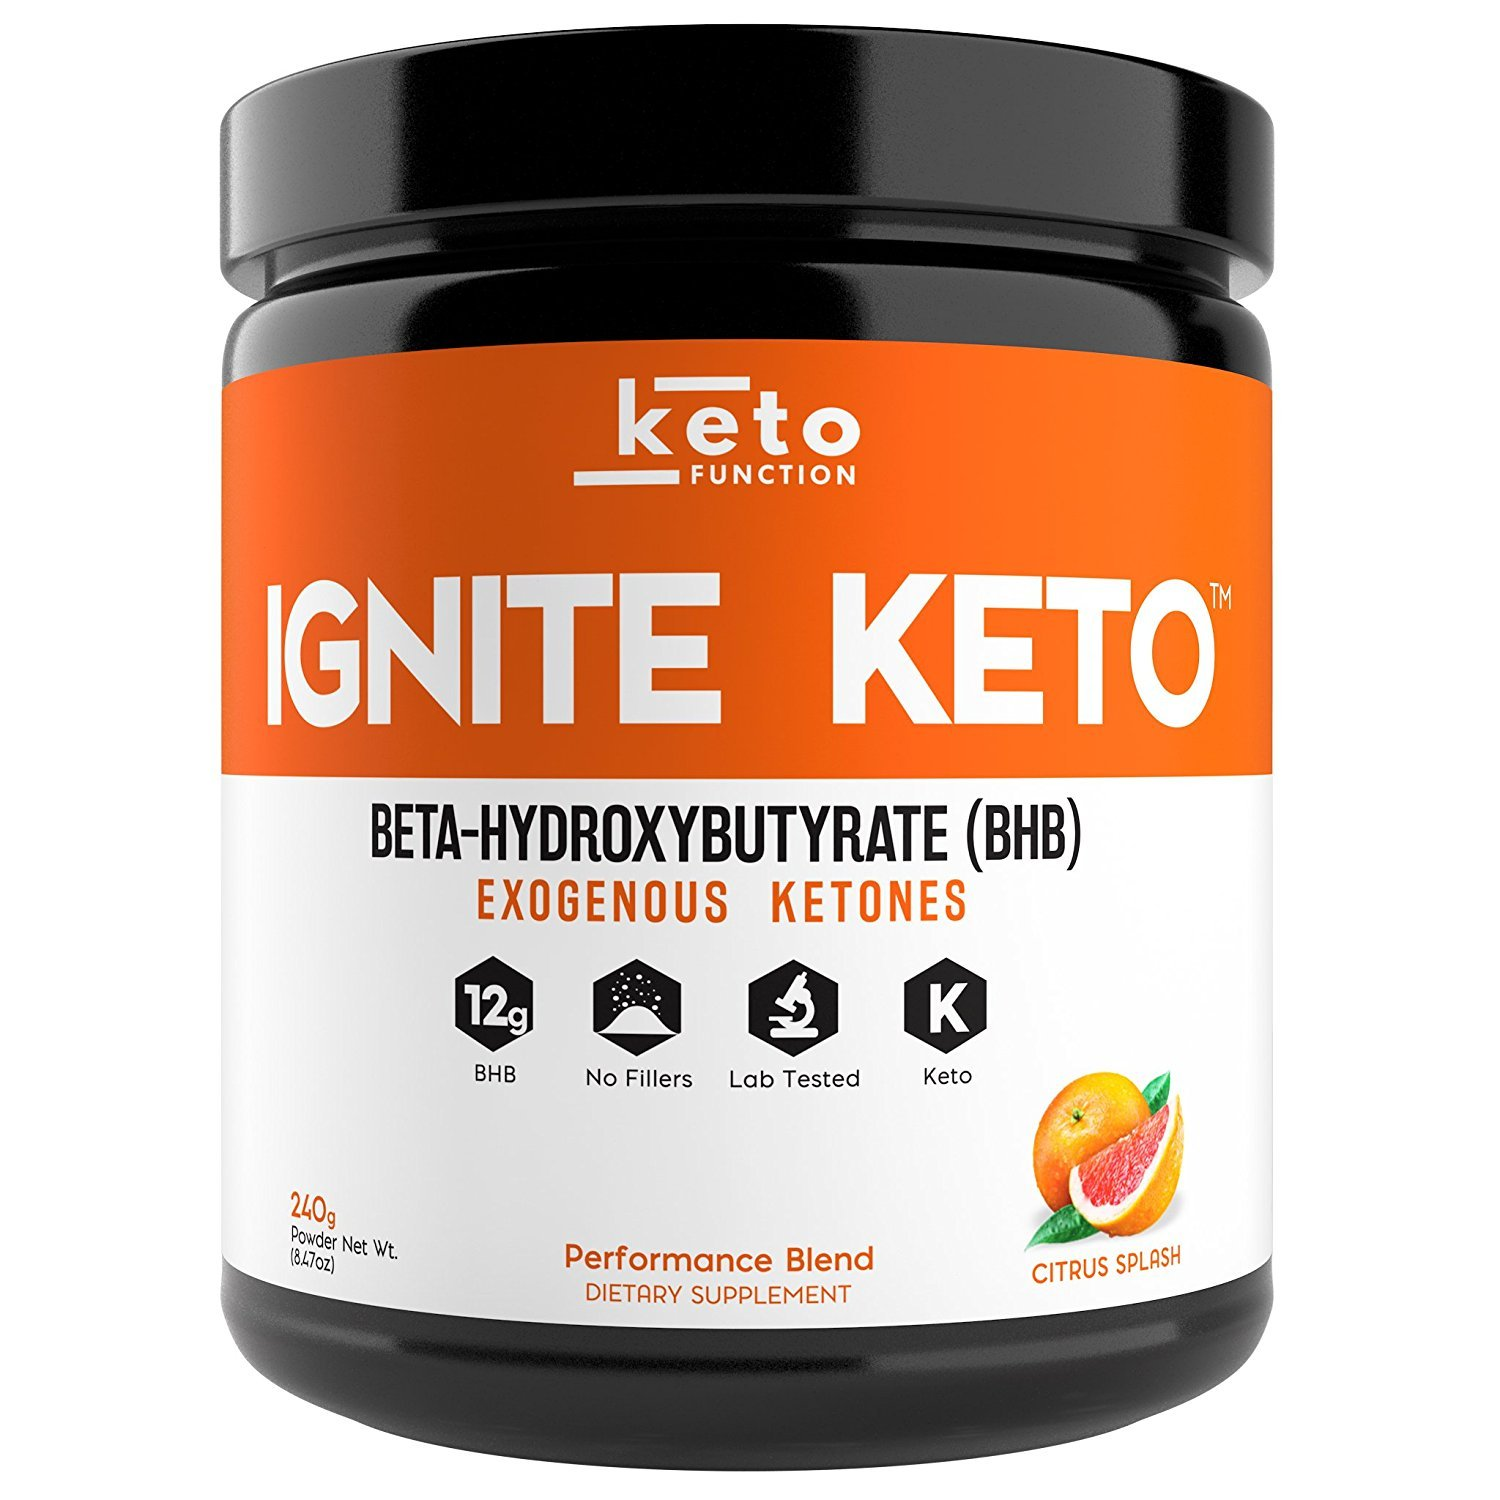 IGNITE KETO Drink - Instant Exogenous Ketones Supplement - 12g Pure BHB Salts - Fuel Ketosis, Energy, and Focus - Best goBHB Ketone Drink Powder Mix - Perfect for Low Carb Keto Diet by Keto Function (Image #1)